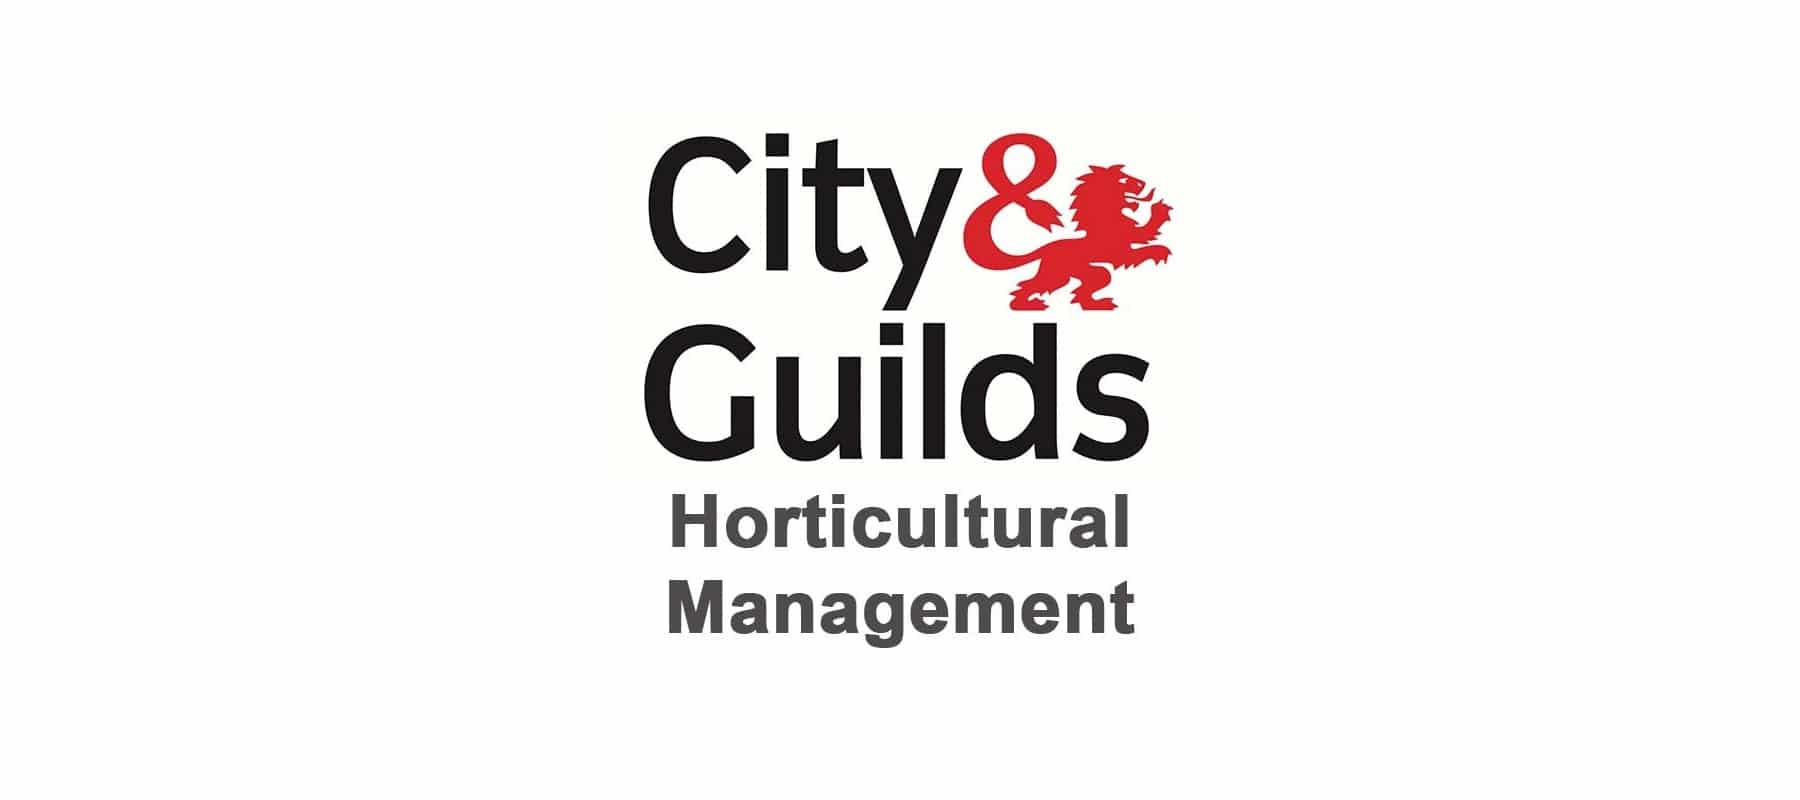 City And Guilds Horticultural Management